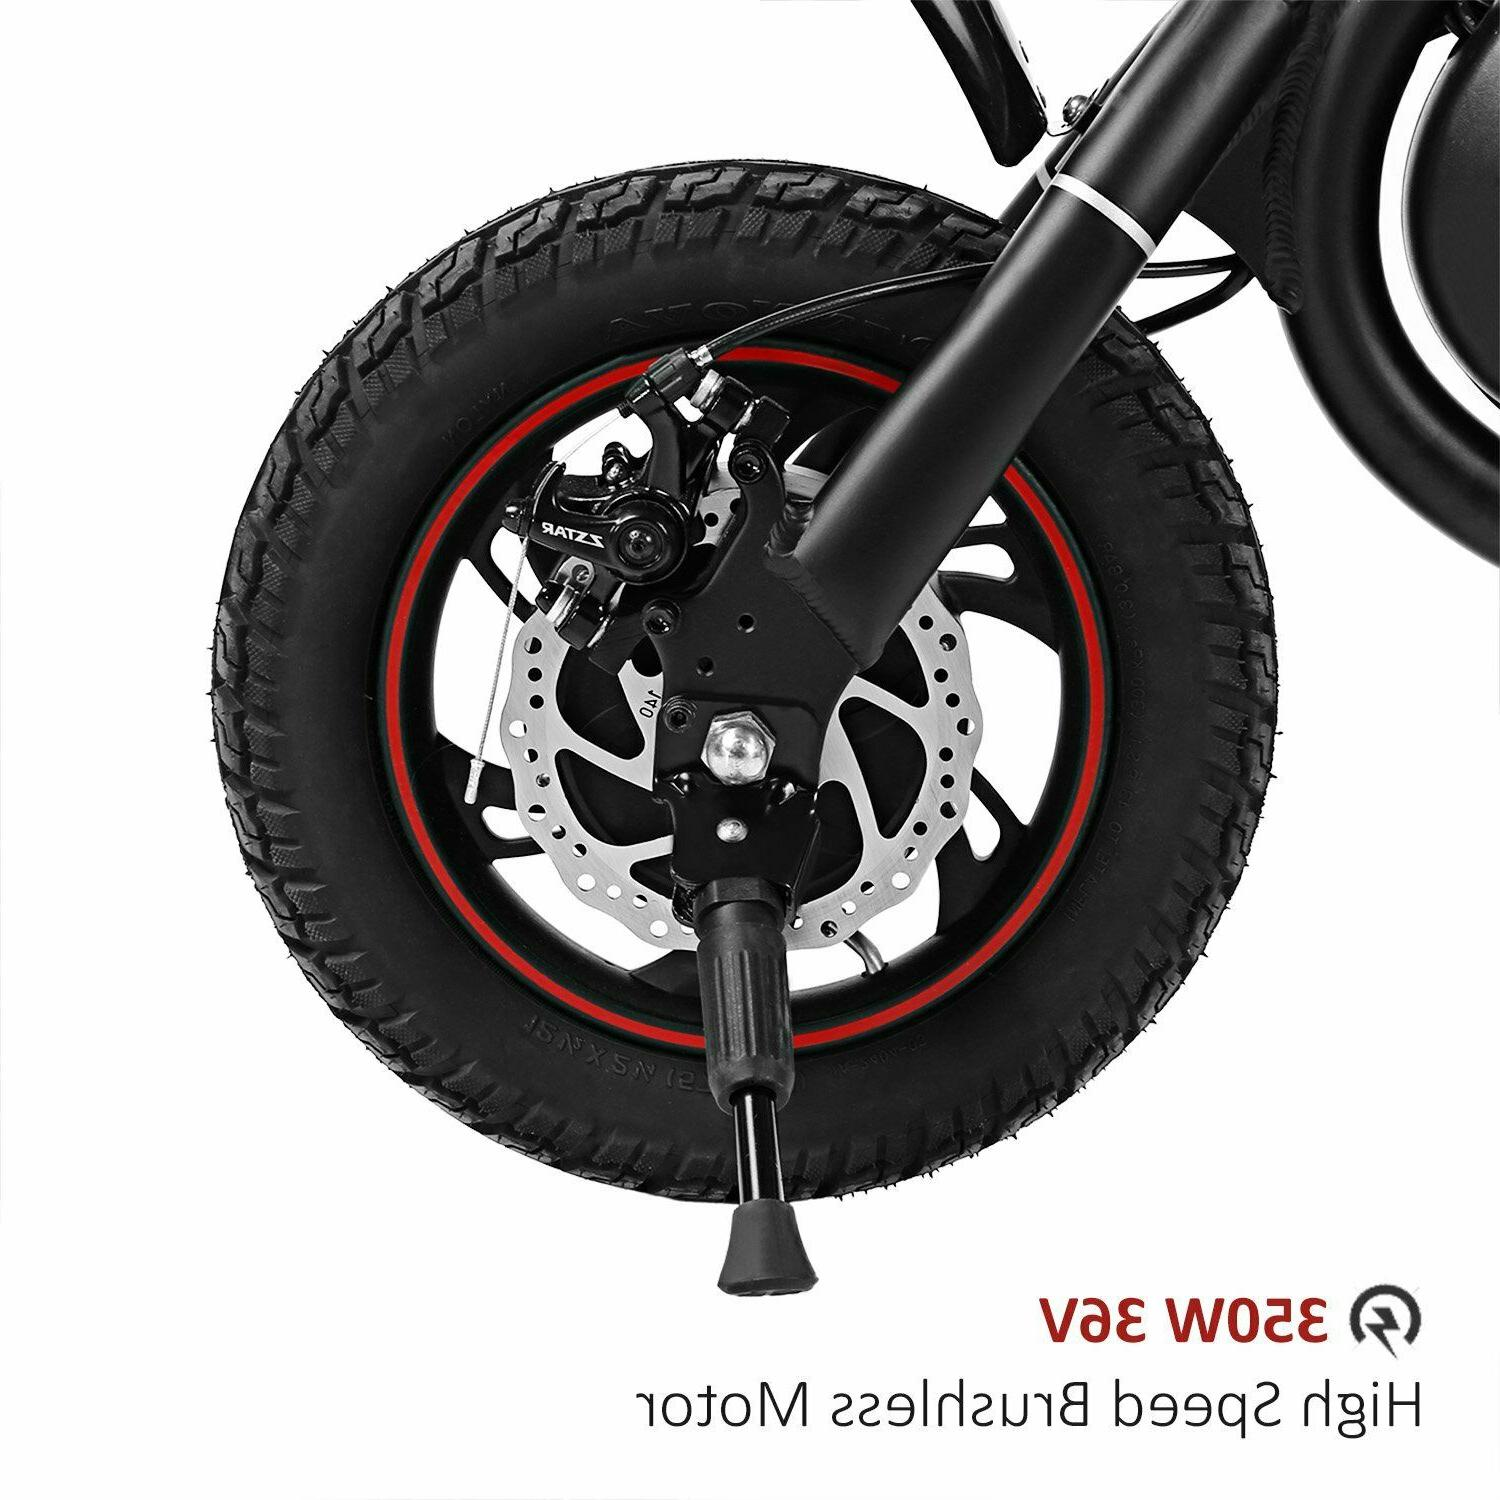 ANCHEER Folding Electric Bicycle/E-Bike/Scooter 350W with Mile